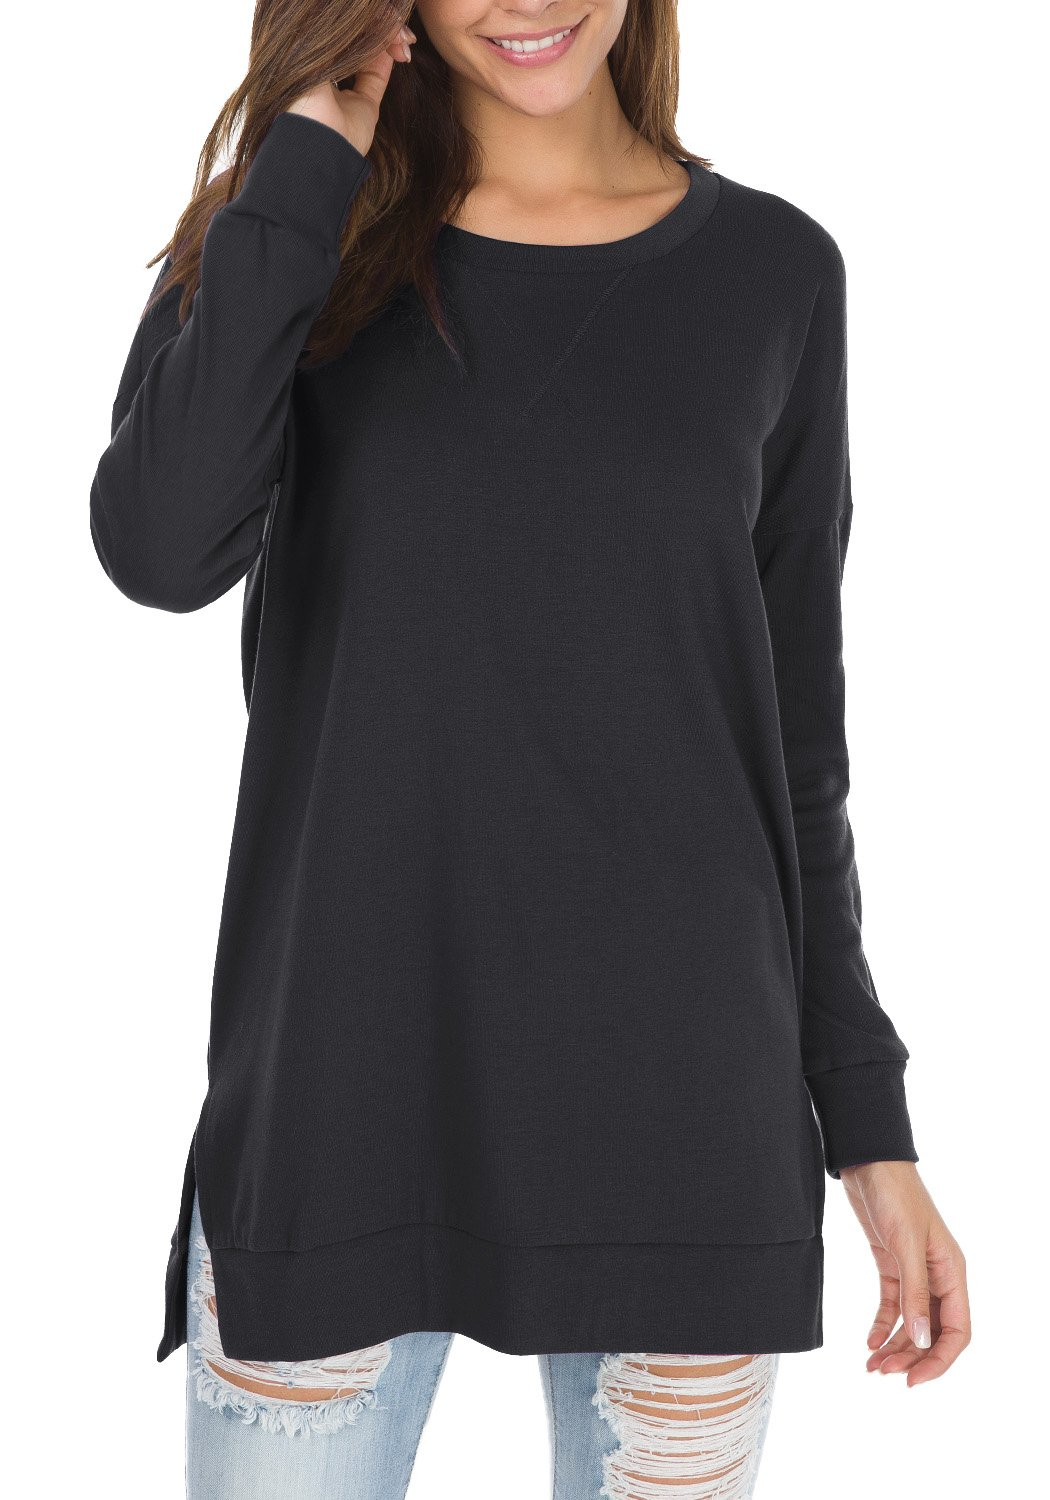 Womens Fall Long Sleeve Plus Pullover Side Split Loose Casual Tunic Tops Black M by levaca